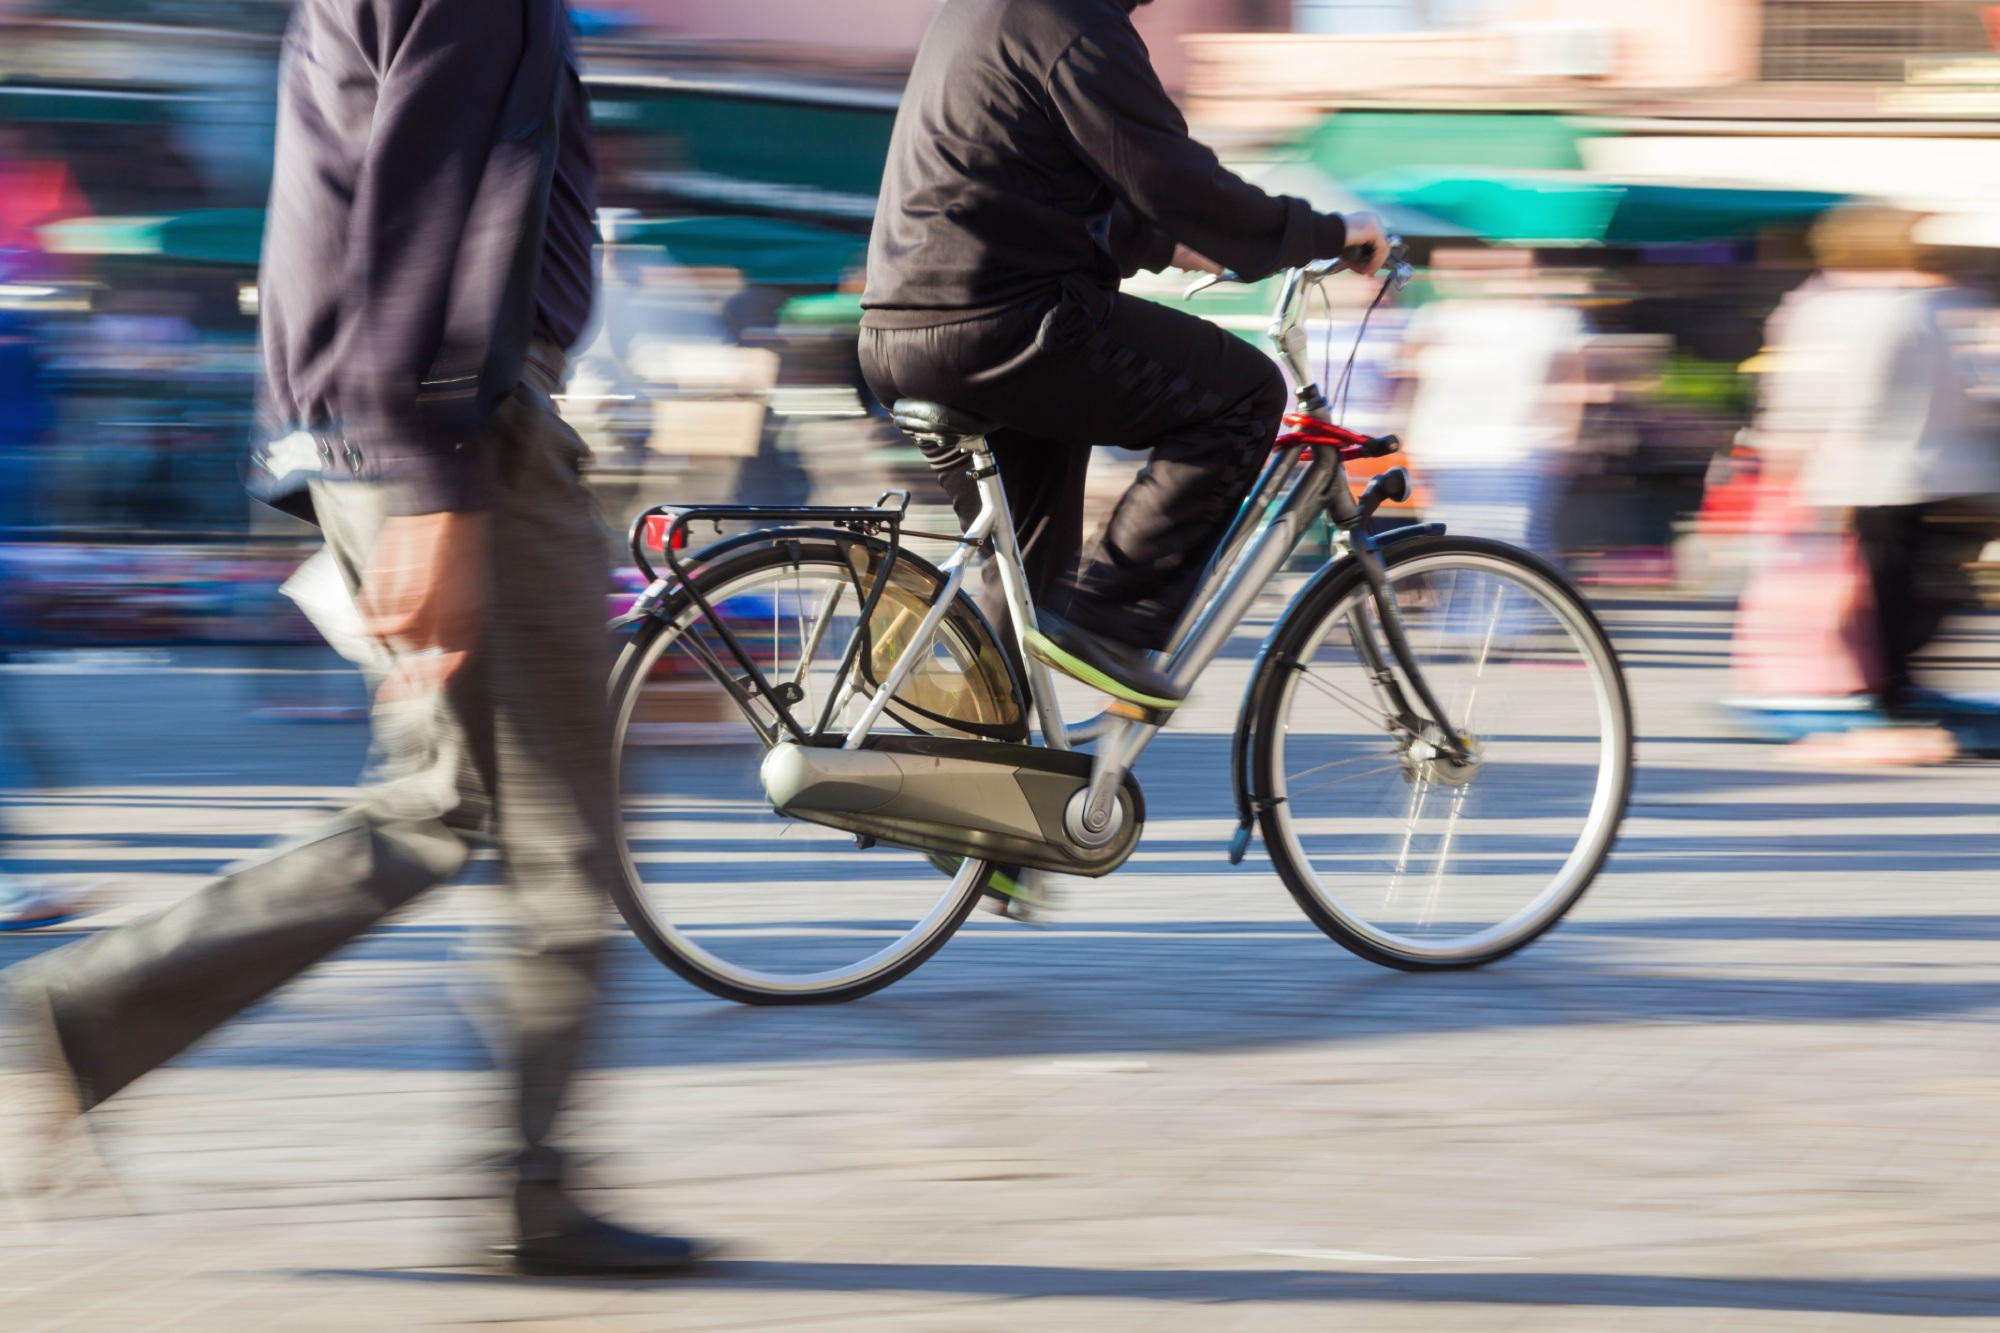 New laws encouraging mutual respect between cyclists and motorists will soon be passed.